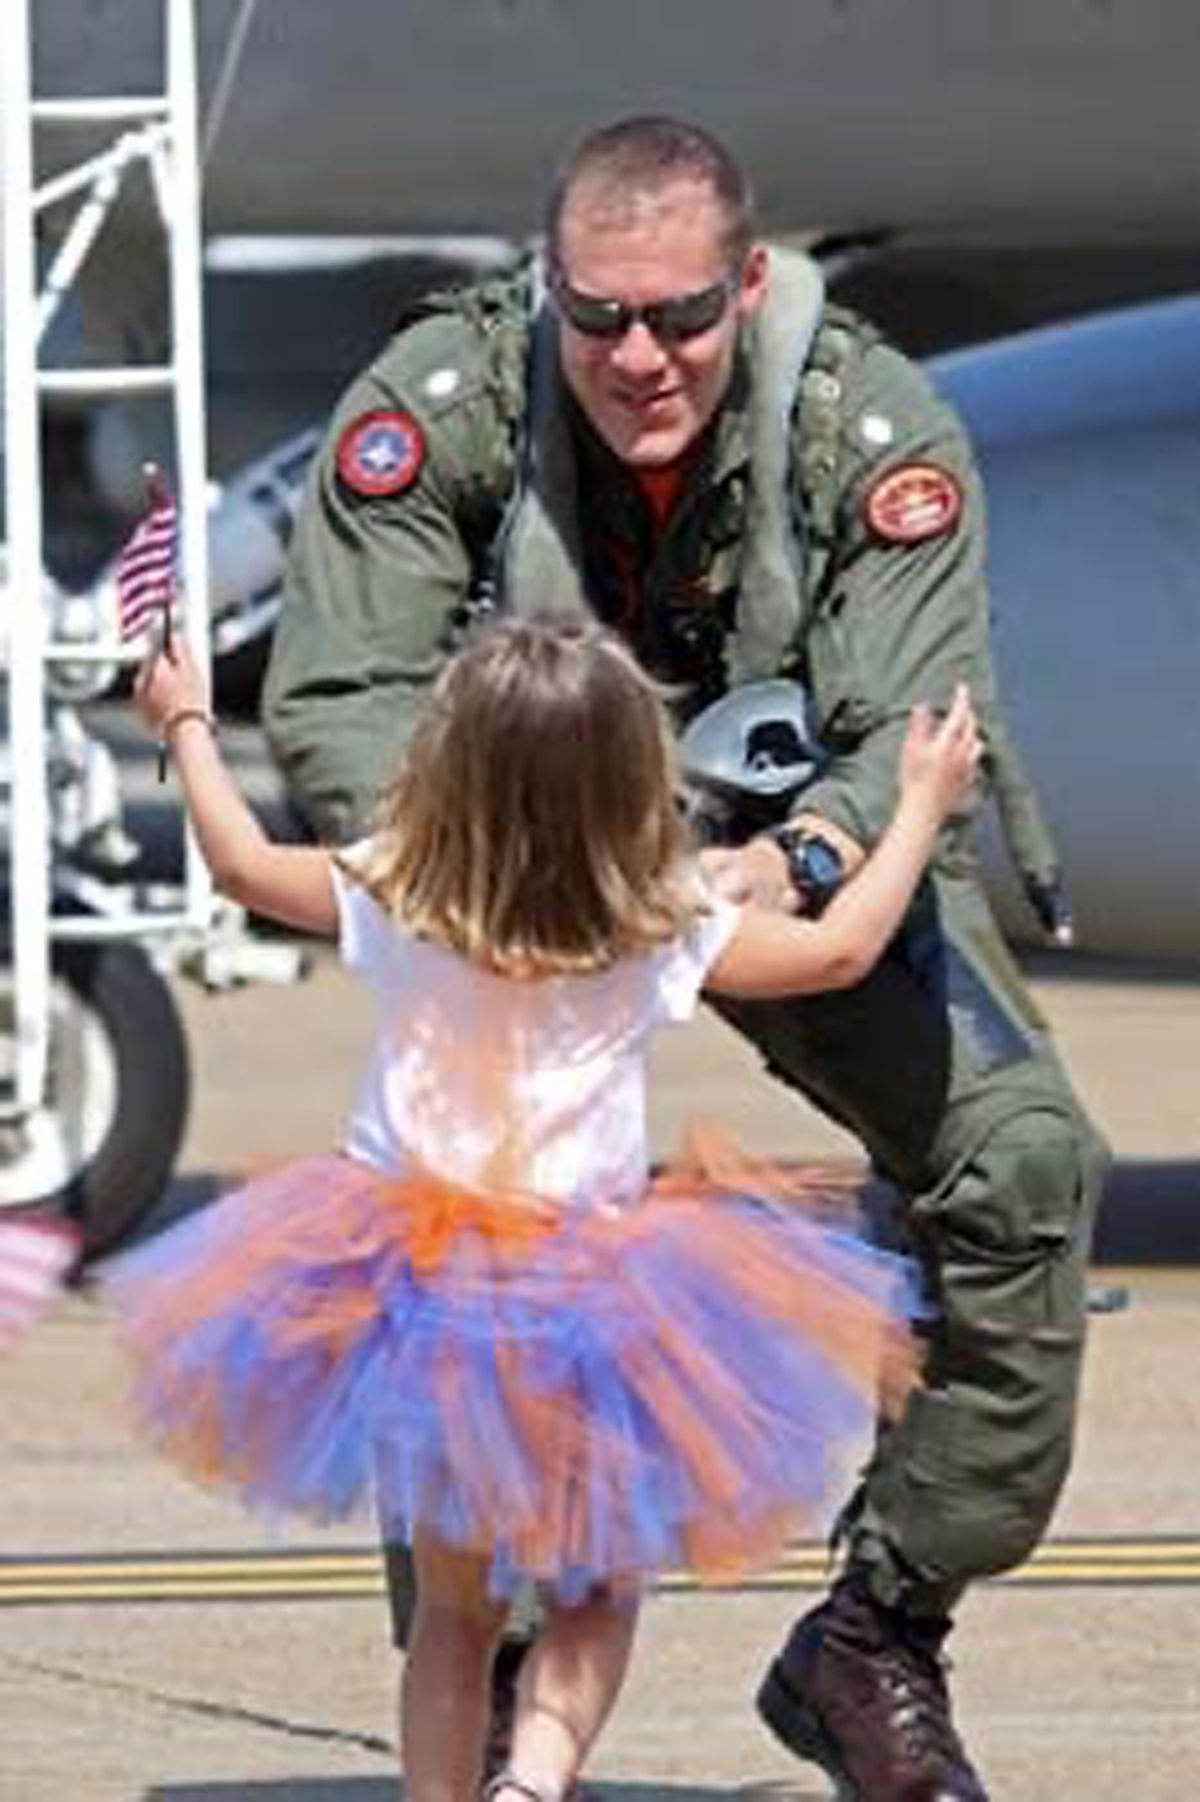 John Capizzi greets one of his then-young daughters in 2010 in Virginia Beach, Virginia. Years later, the retired Navy commander successfully fought the VA to be able to use his Post-9/11 GI Bill benefits to pay for college for his two daughters, who are now in high school.